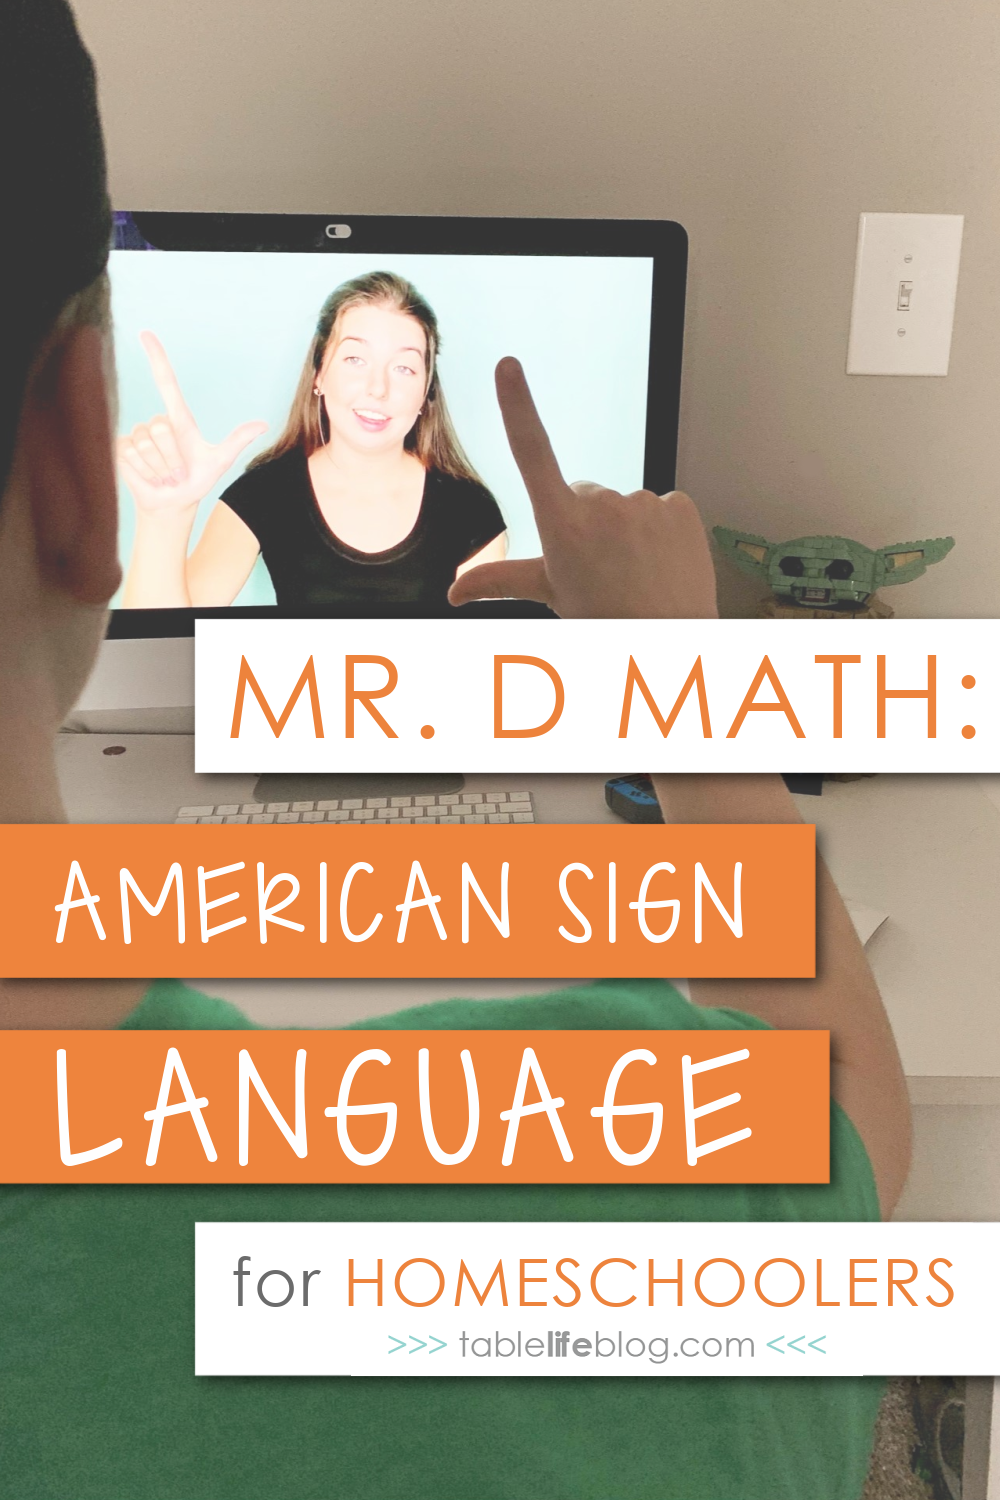 Do you have a teen who wants to learn American Sign Language, but need some help making it happen from home? Good news: today I'm sharing our review of an online ASL course that's perfect for homeschoolers!